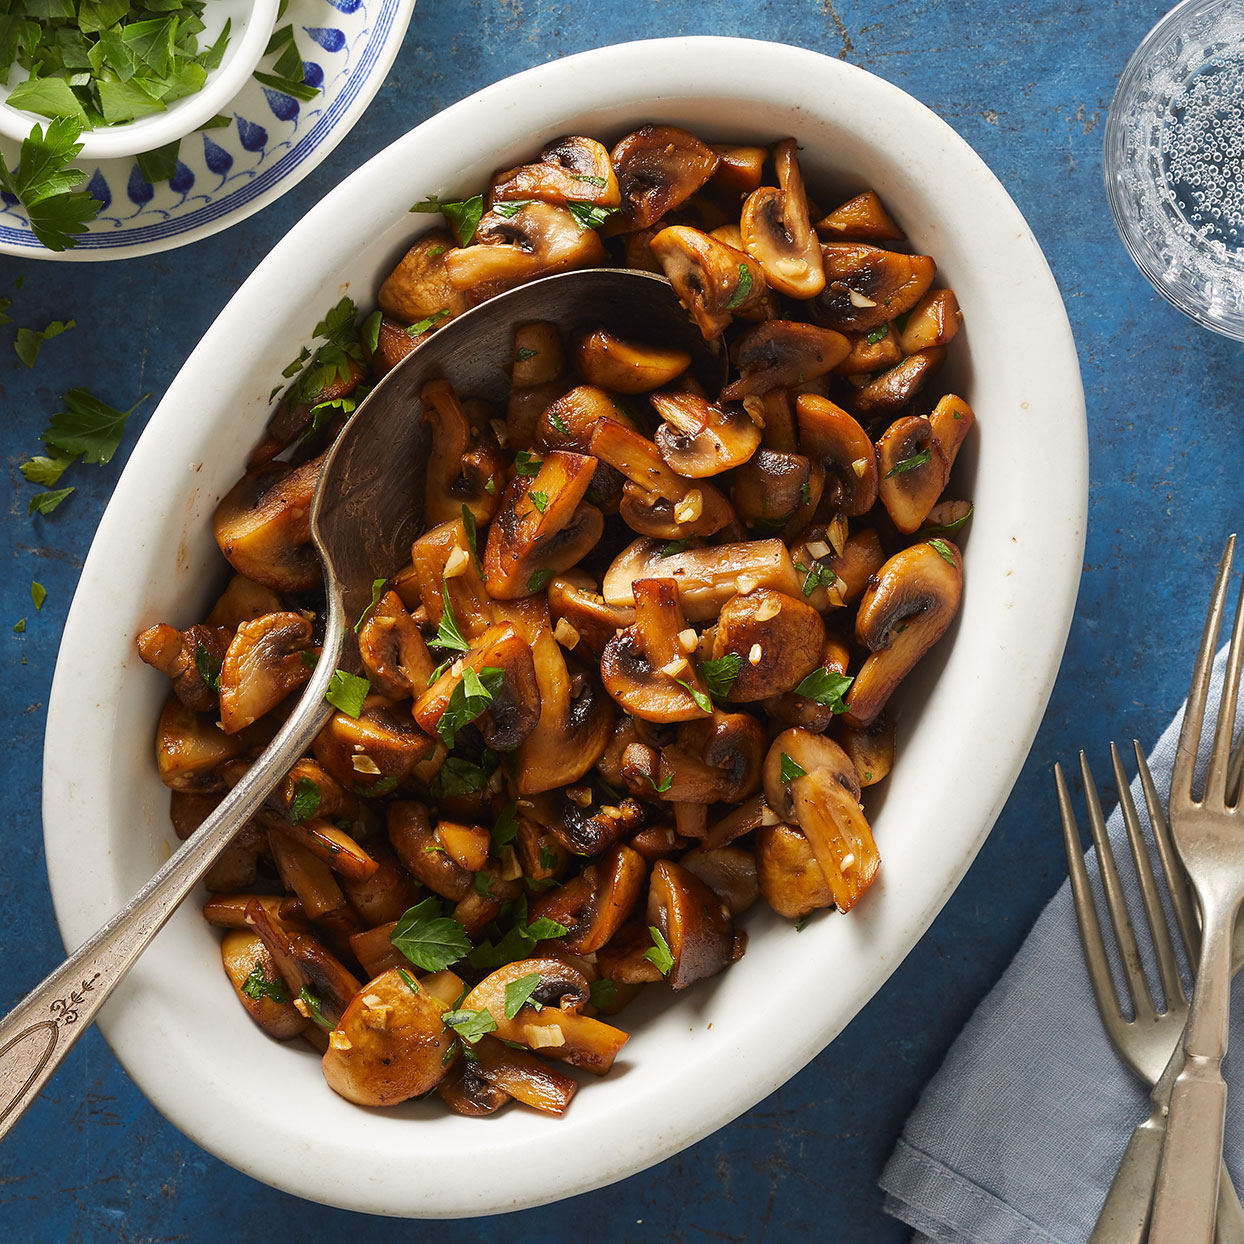 Enjoy these savory mushrooms as a topping for steak or burgers, or on their own as a rich umami side dish. Source: EatingWell.com, March 2020